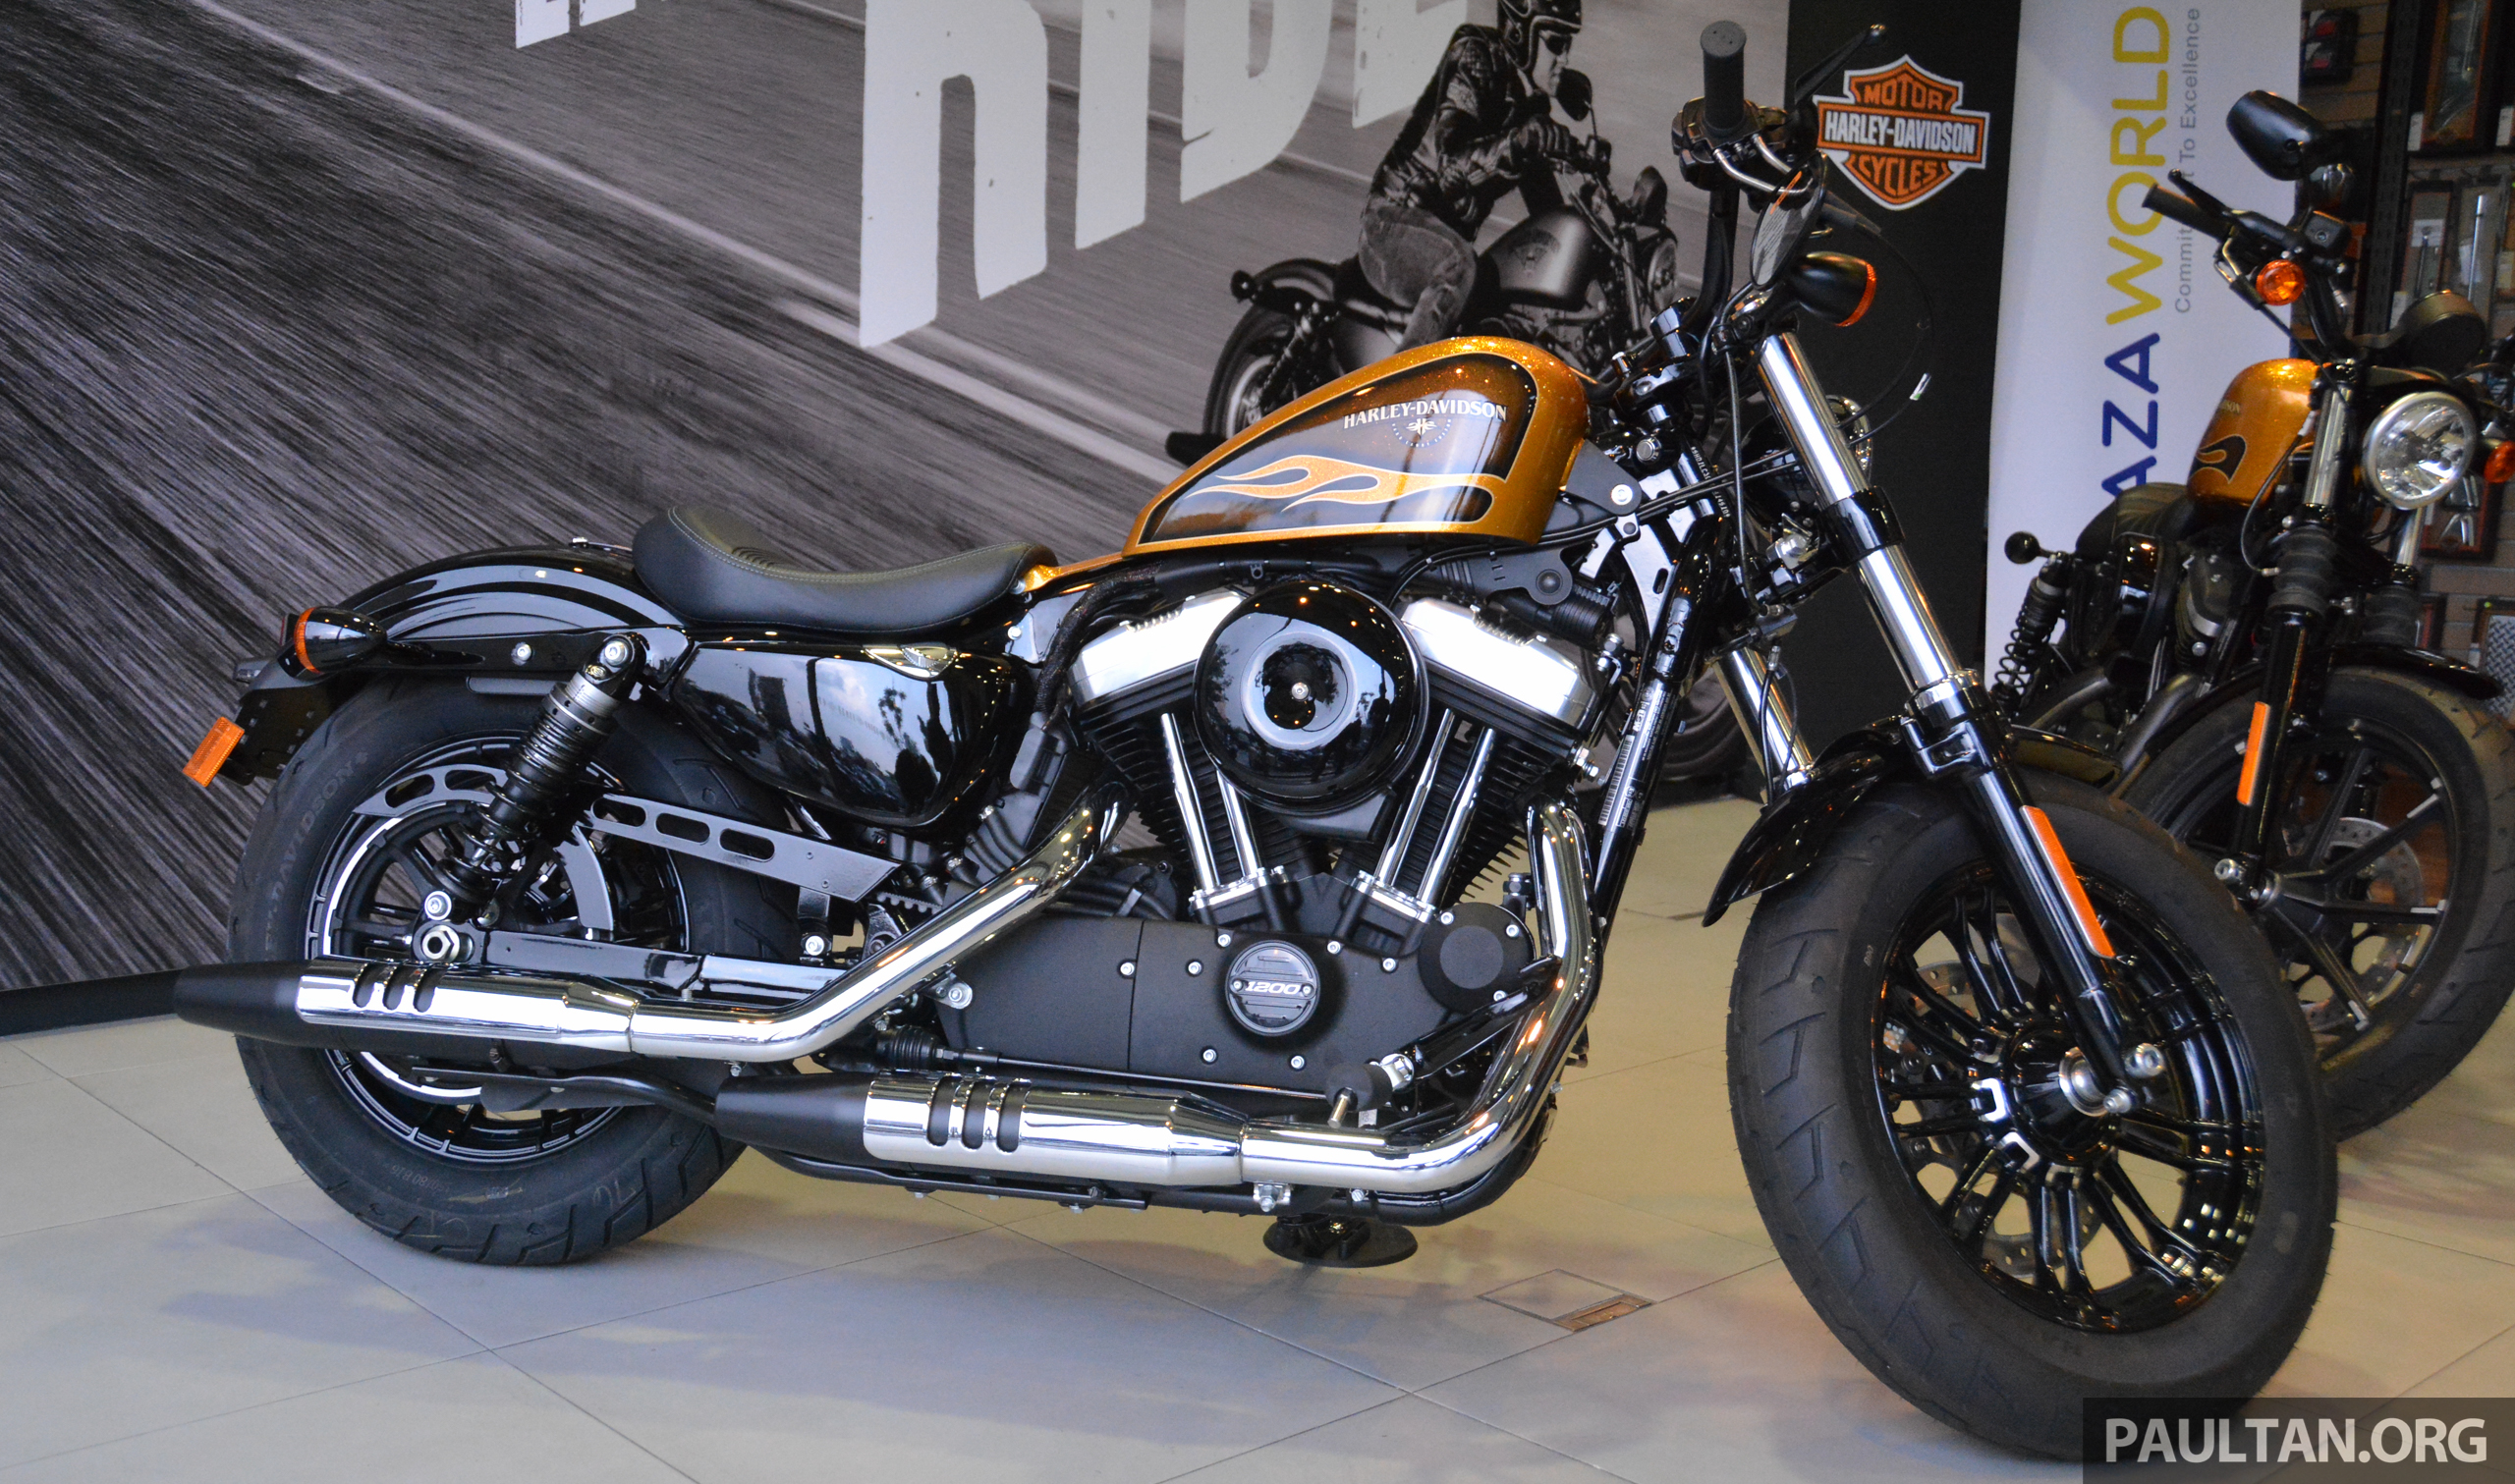 Harley Davidson Forty Eight For Sale Malaysia